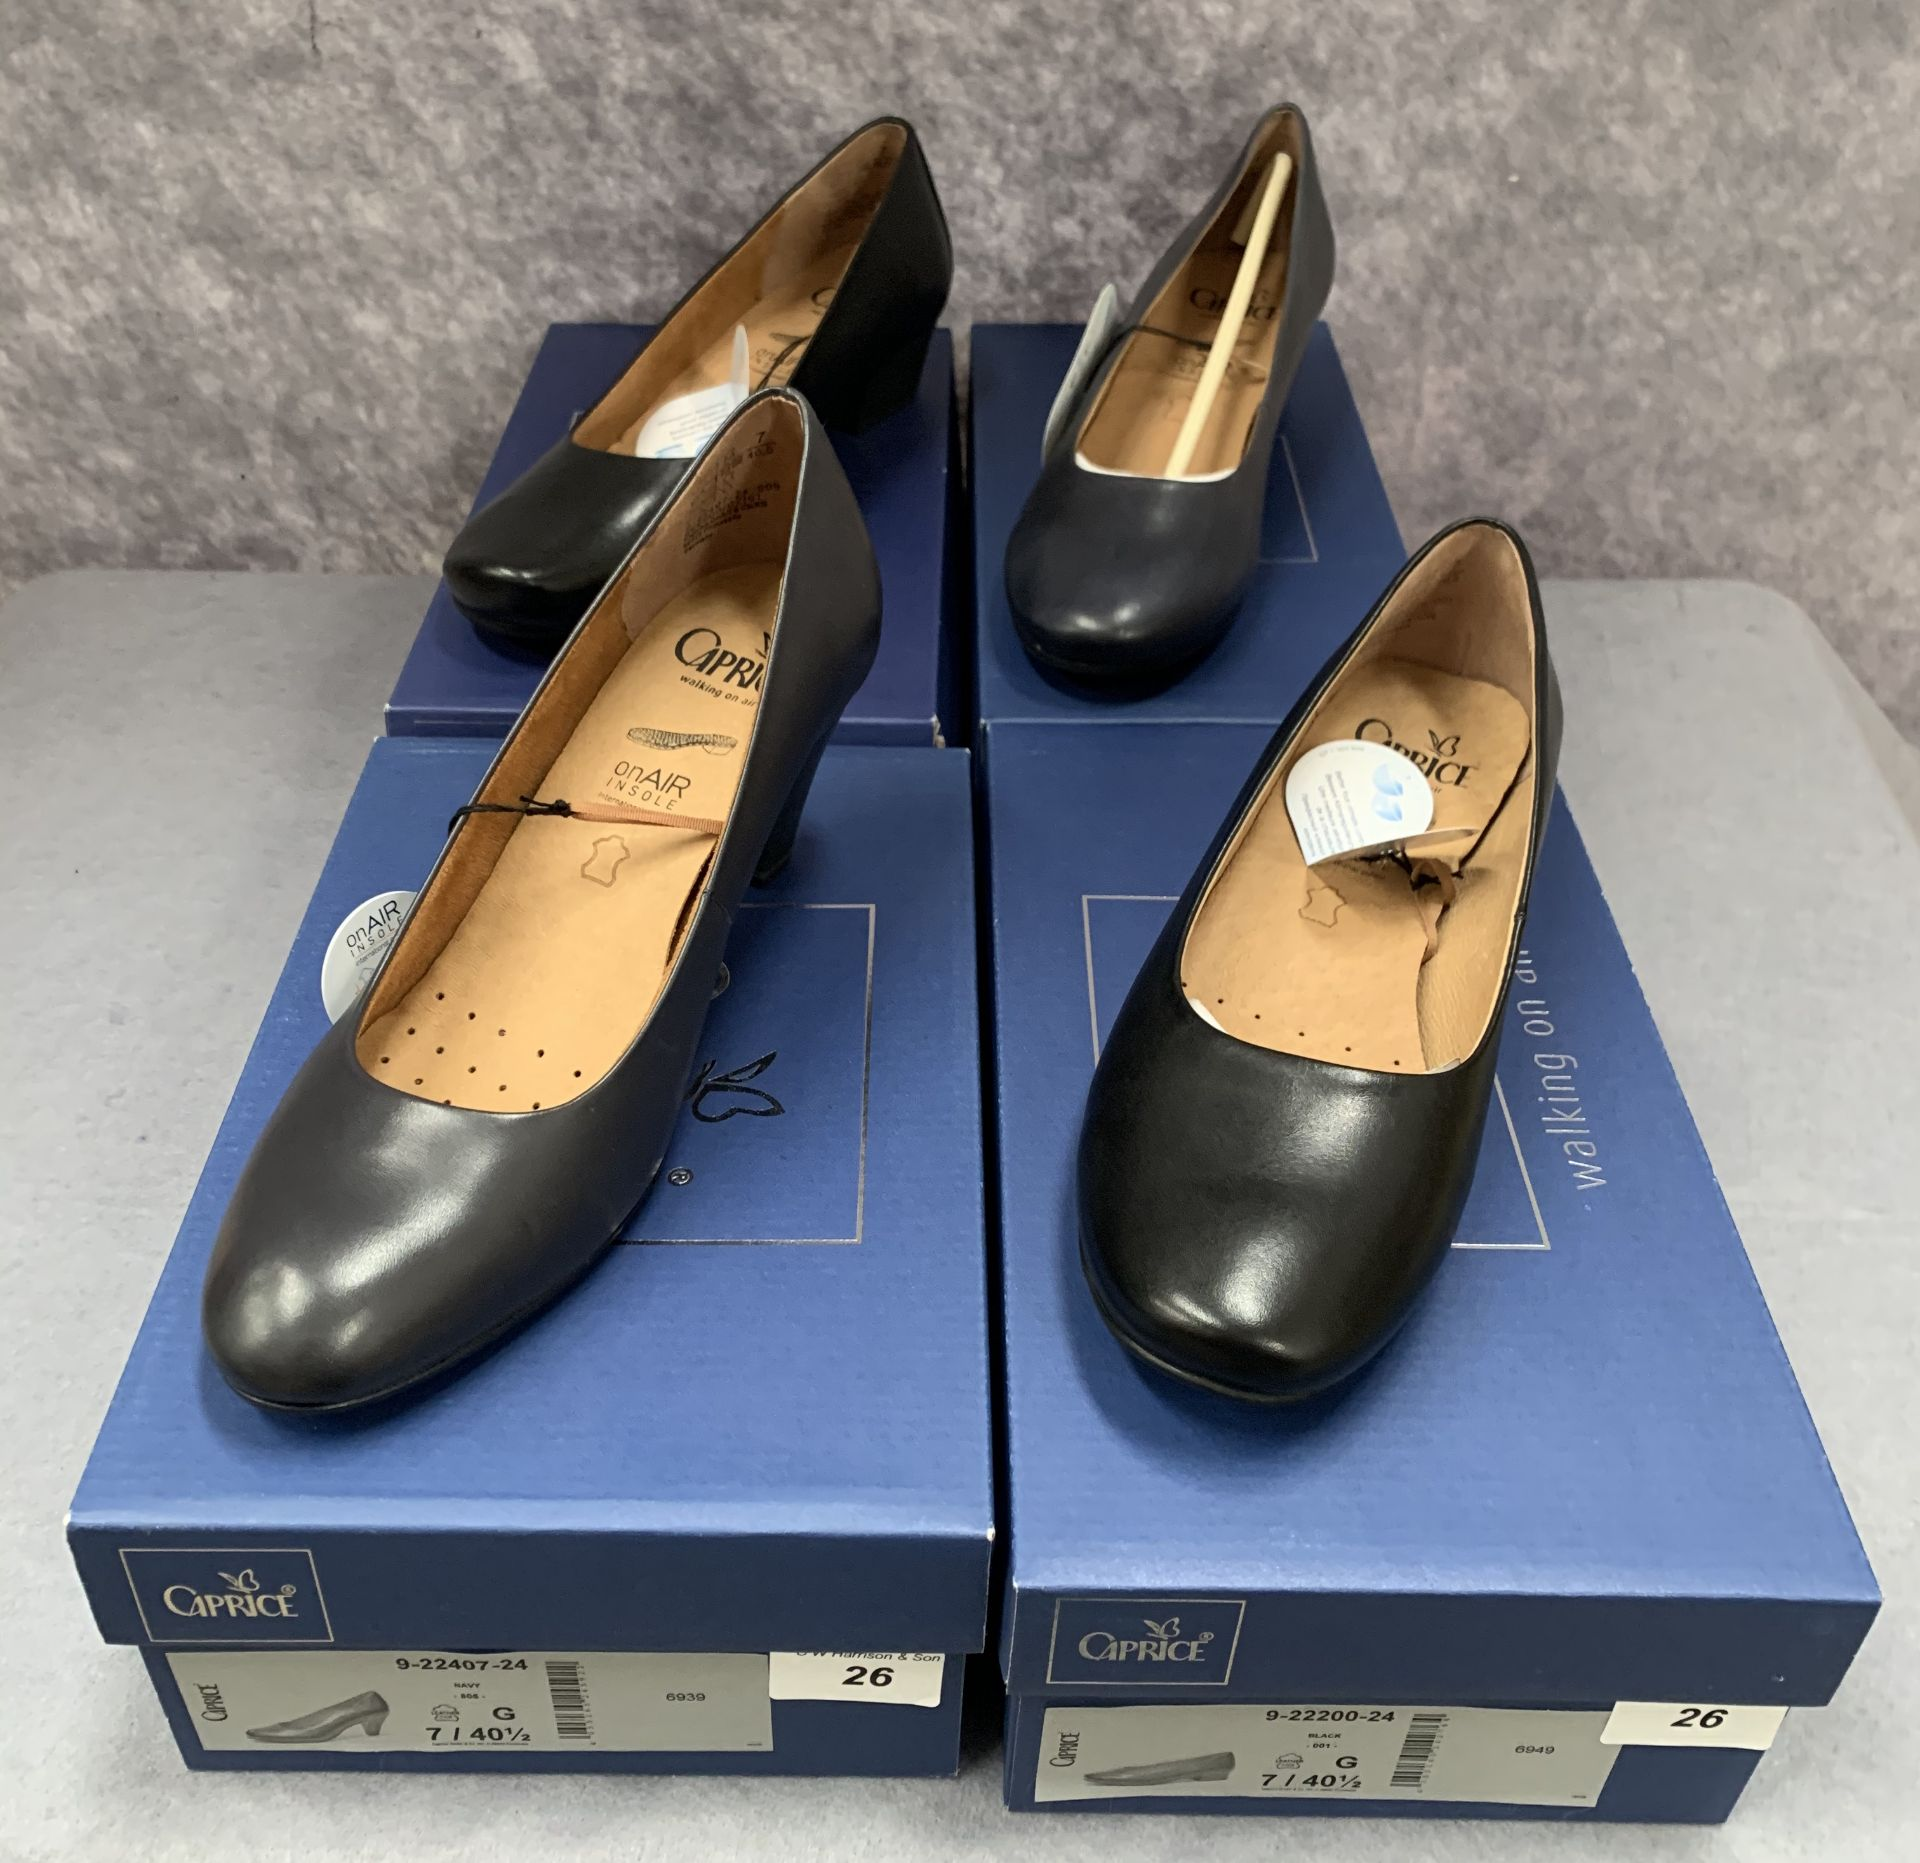 Lot 26 - Four pairs of Caprice ladies shoes in black (2) and navy (2), various styles, size 7,